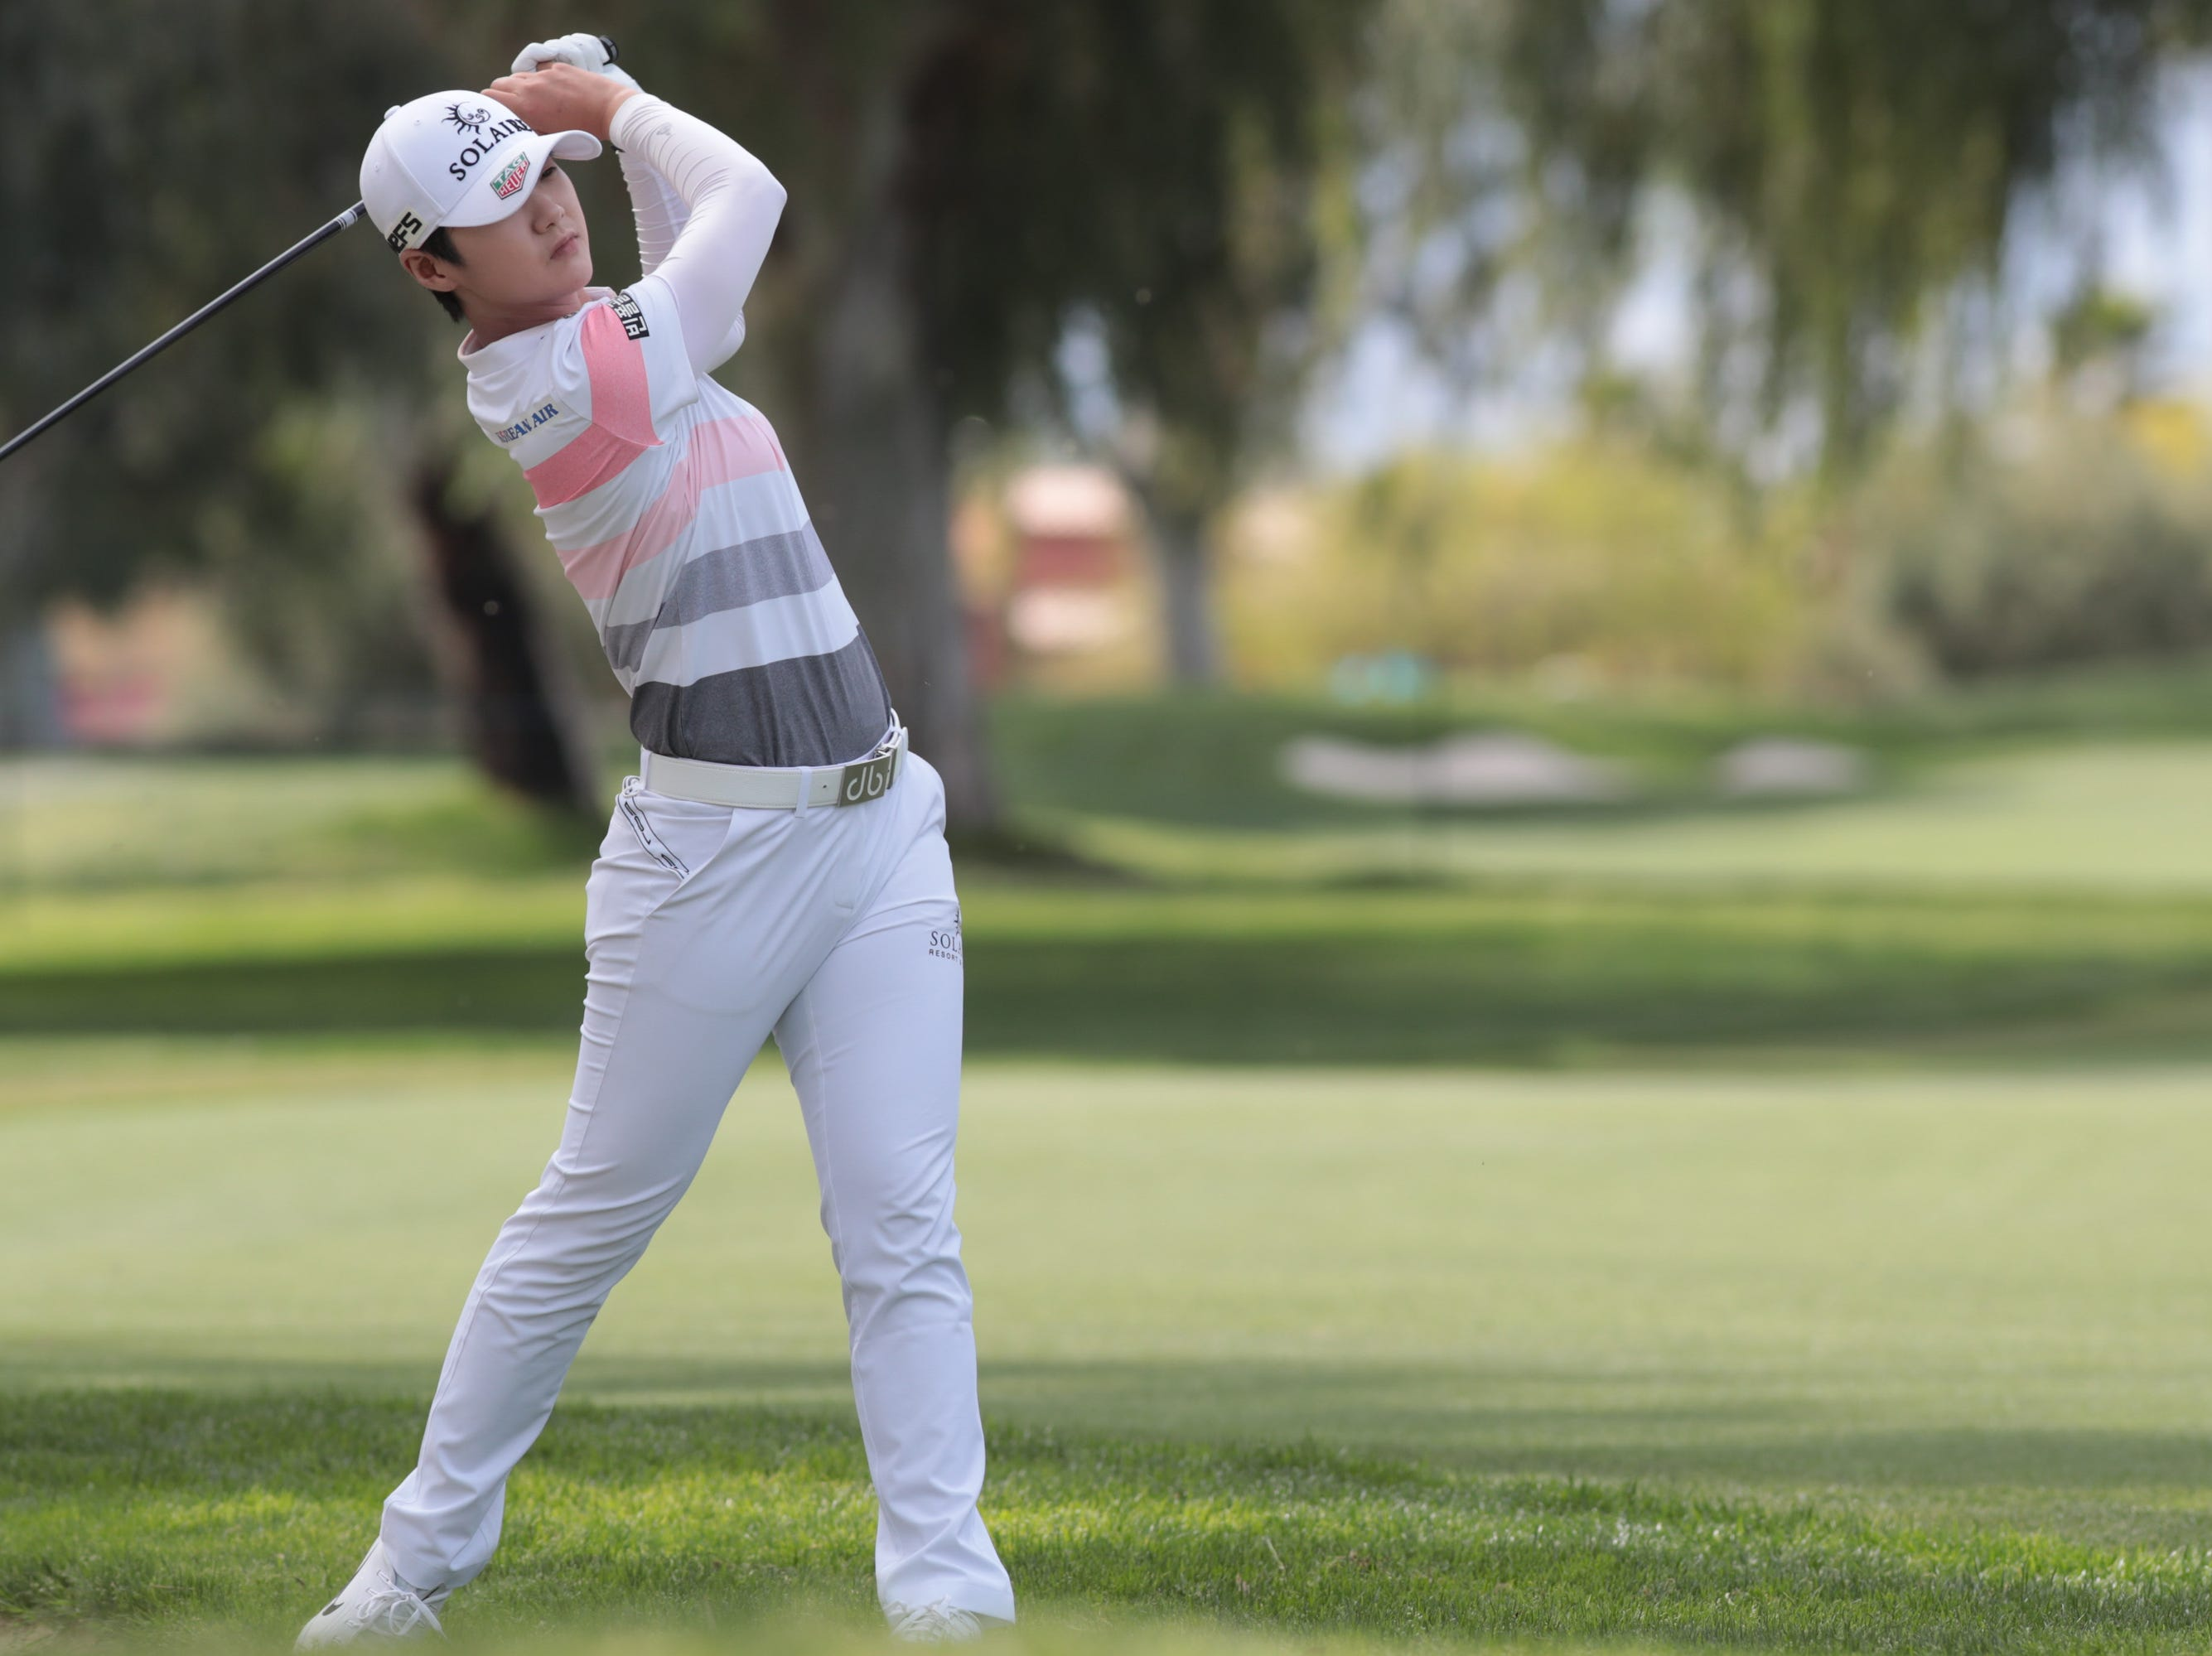 Sung Hyun Park hits on the ninth hole of the Dinah Shore Course at the ANA Inspiration, Rancho Mirage, Calif., April 6, 2019.